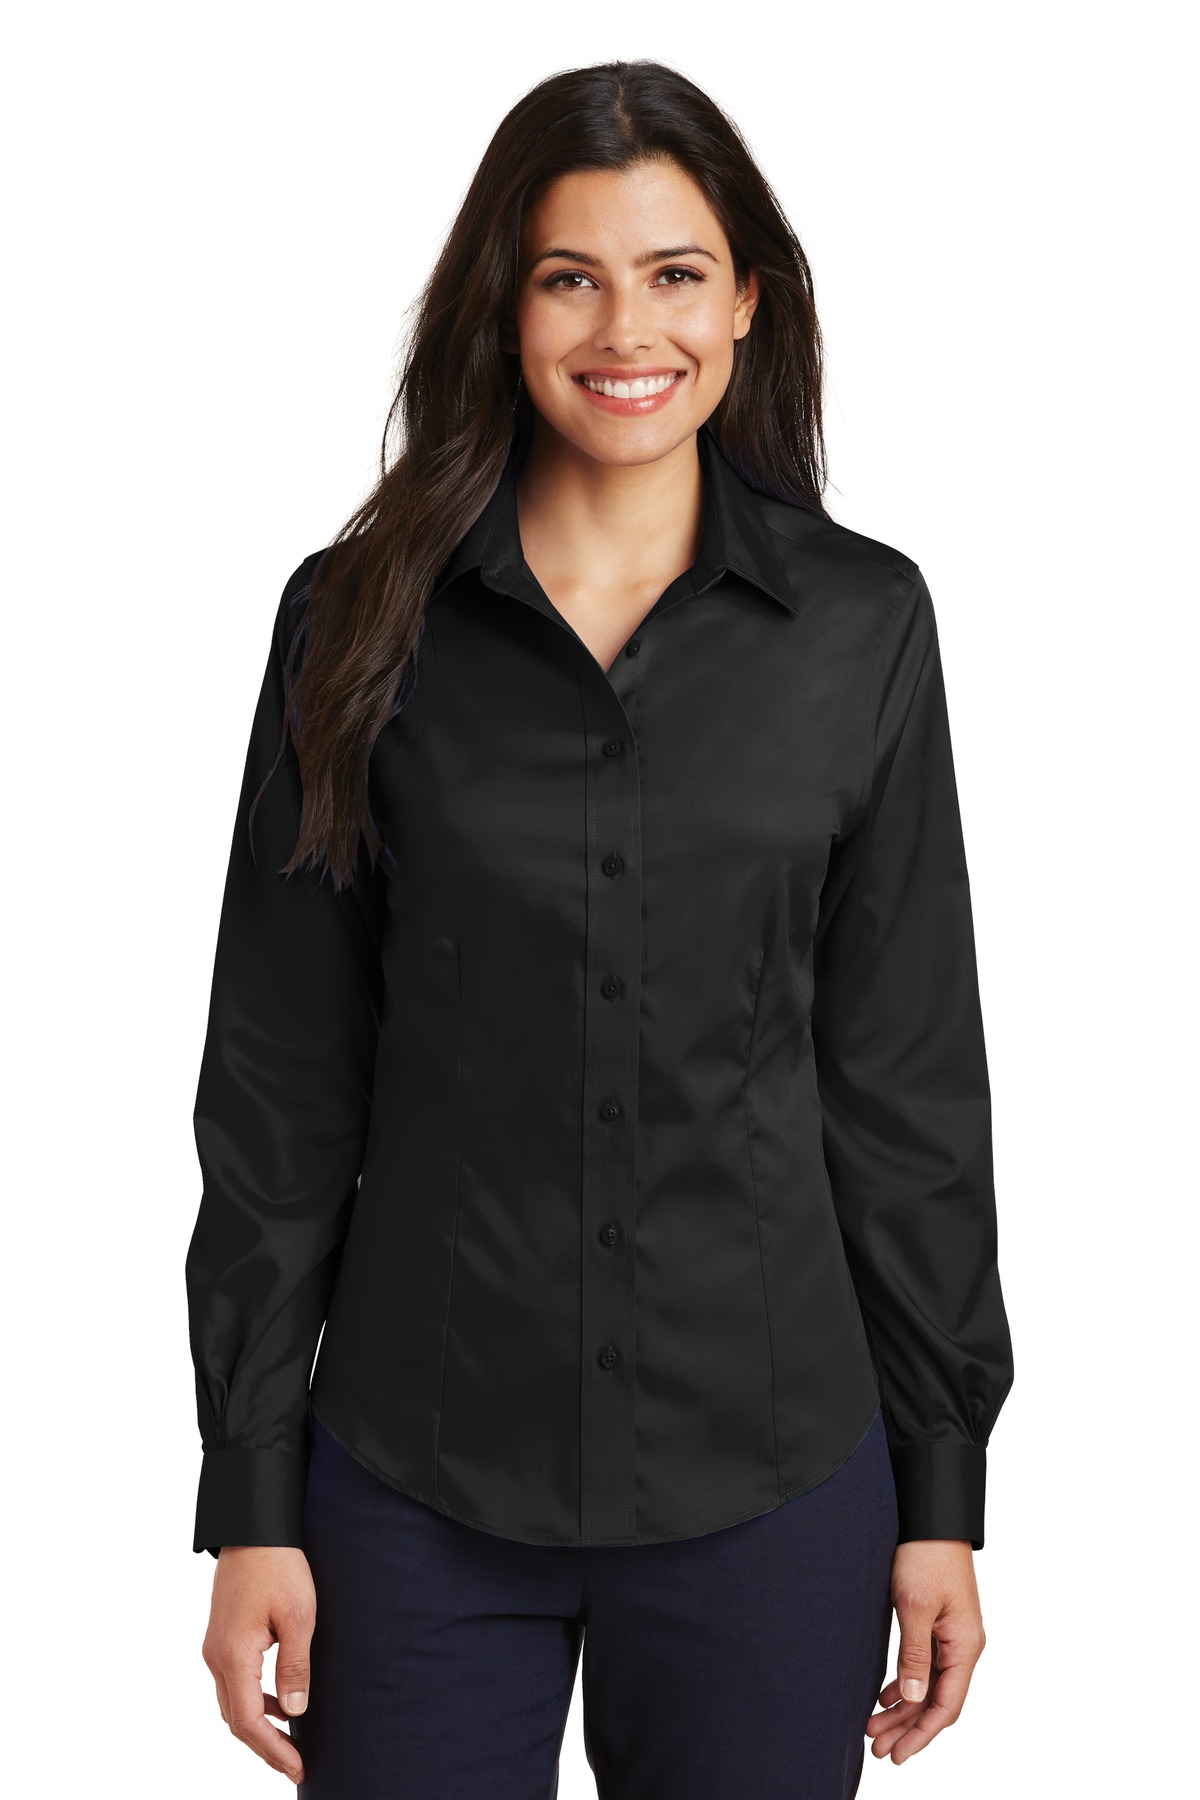 Port Authority ®  Ladies Non-Iron Twill Shirt.  L638 - Black